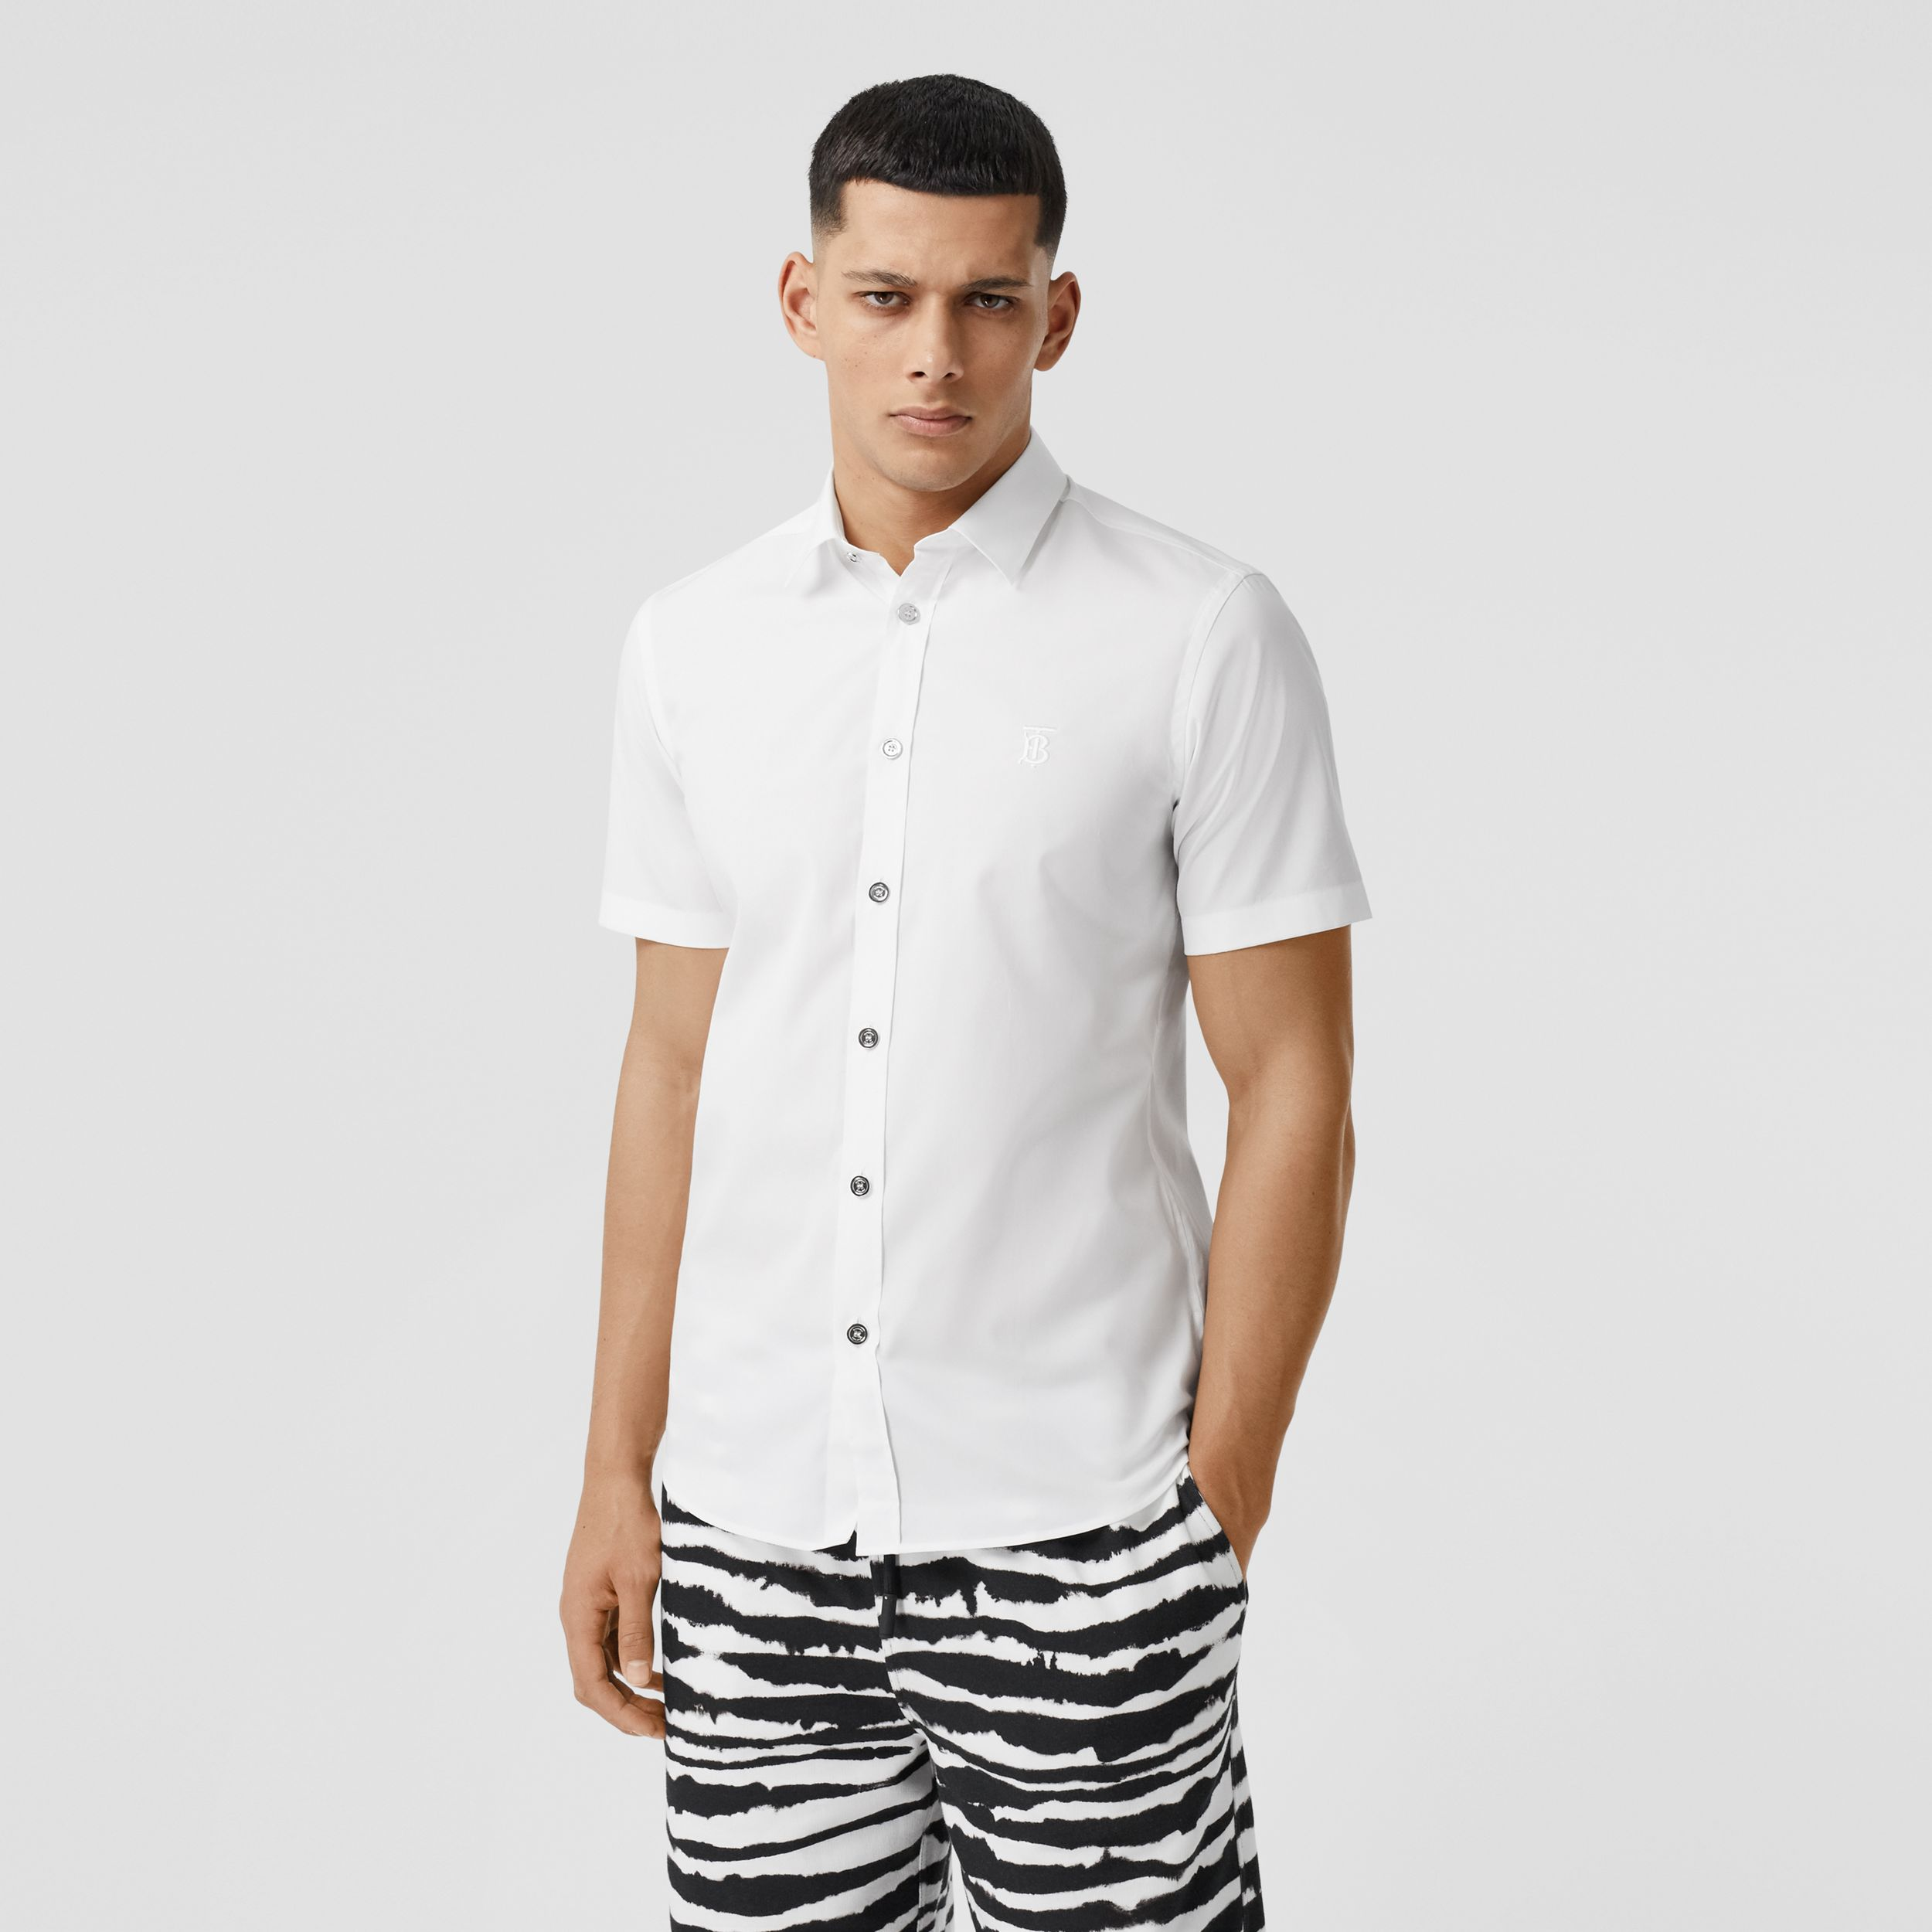 Short-sleeve Monogram Motif Stretch Cotton Shirt in White - Men | Burberry Canada - 1